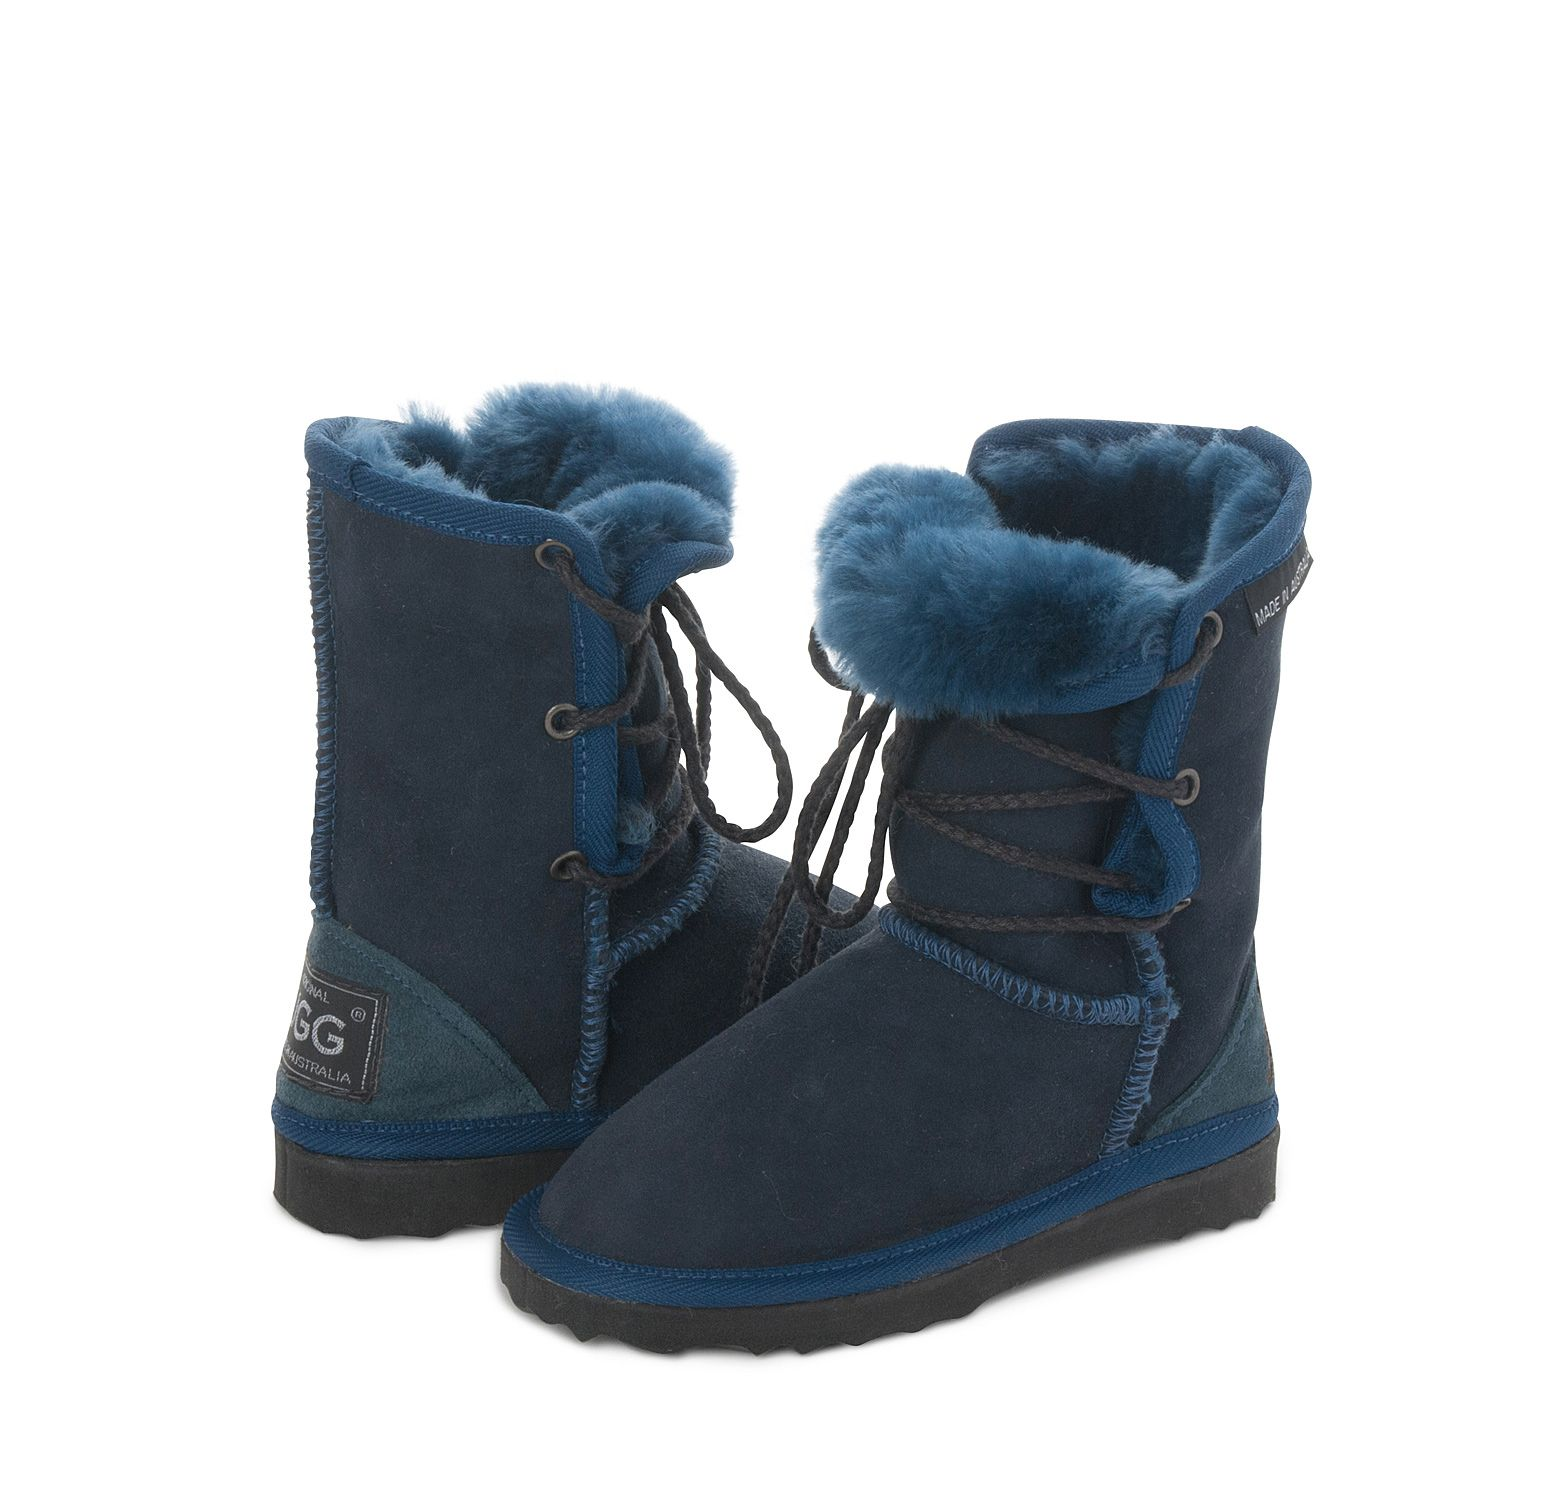 Explore Kids Ugg Boots, Winter Child, and more!